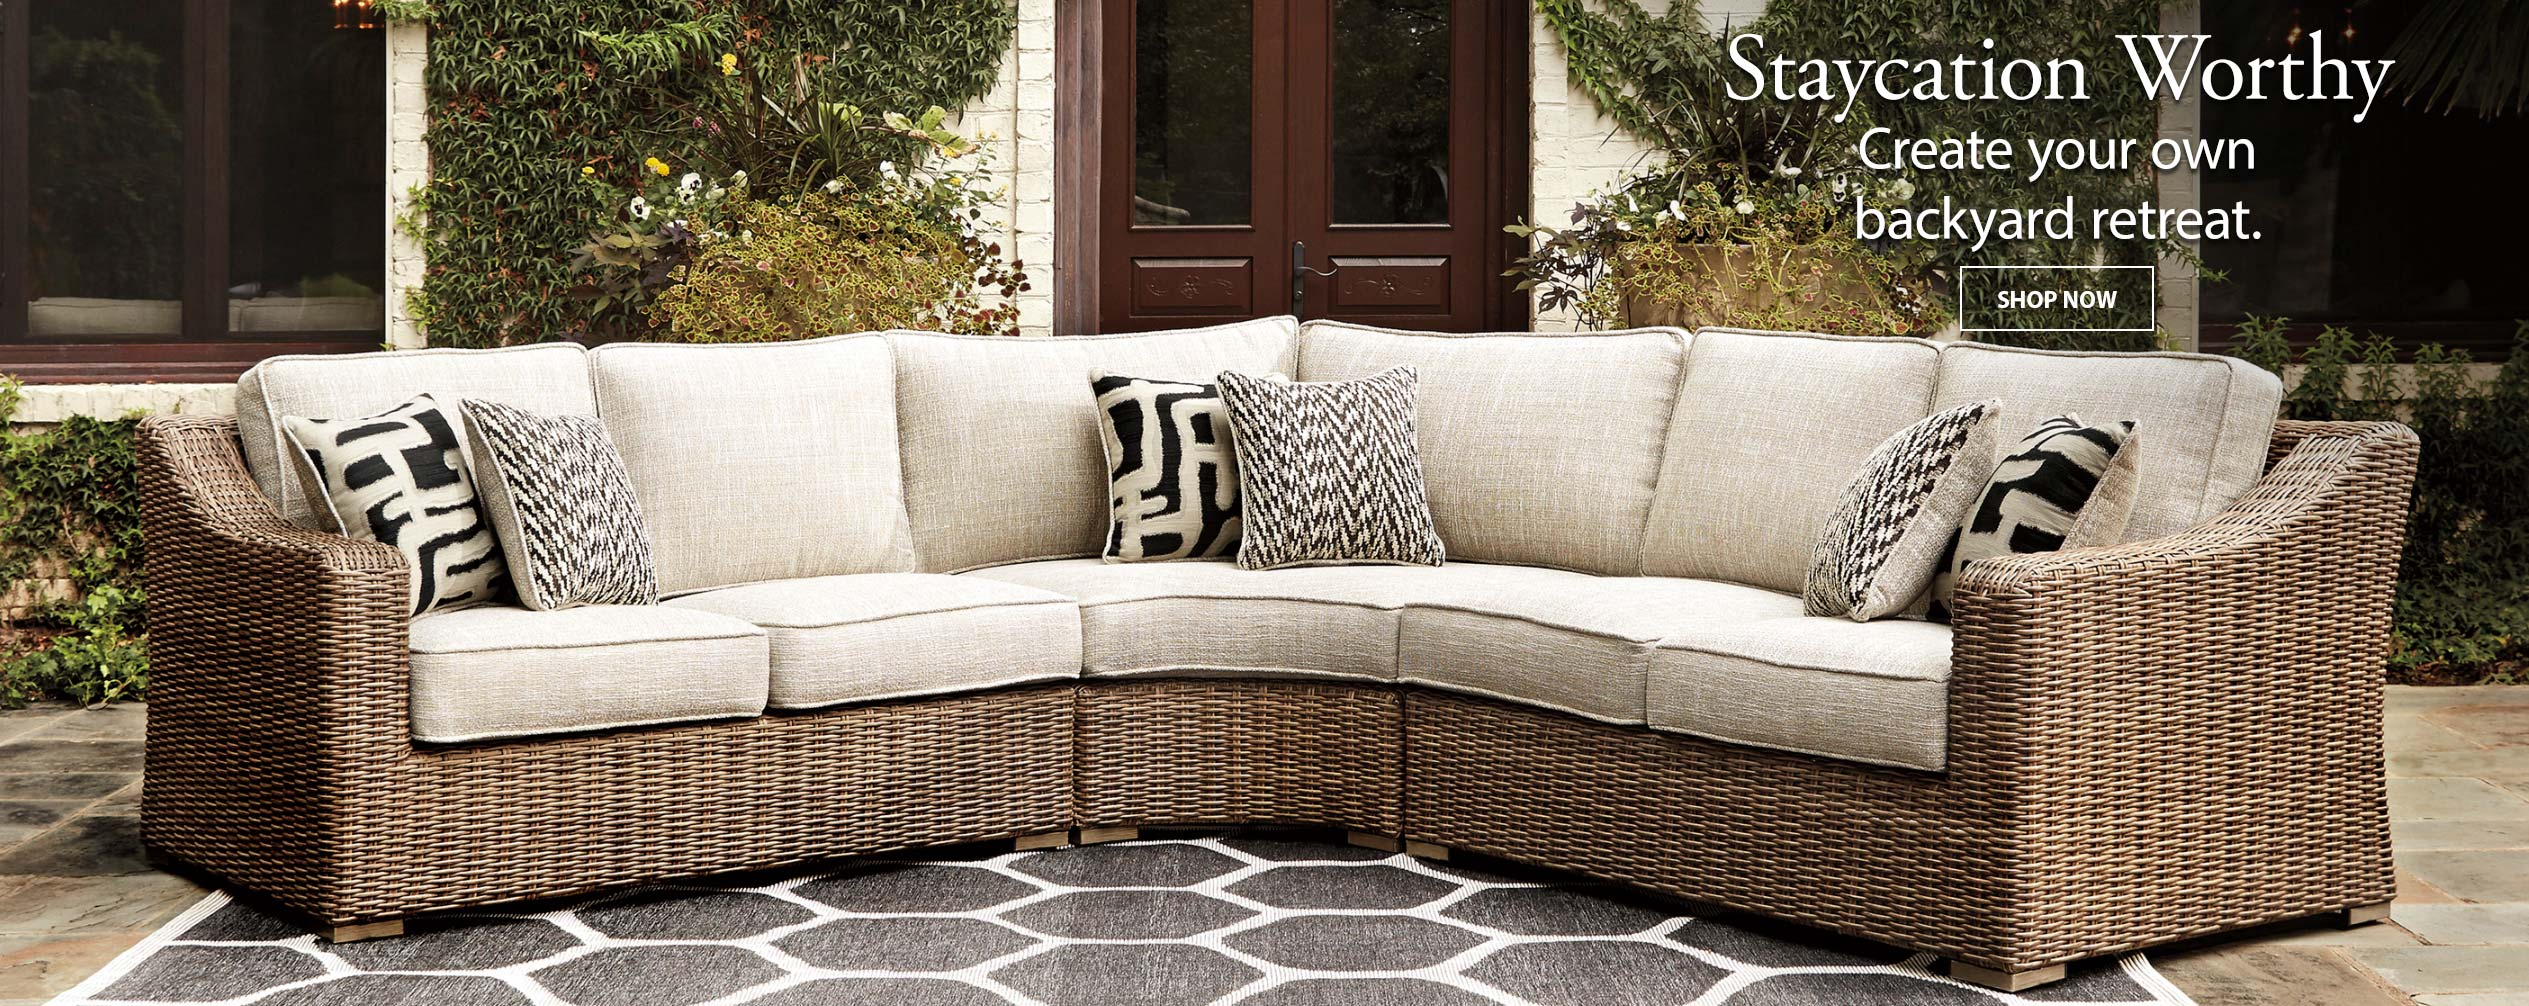 d8cc8e7ac16 ... Outdoor Furniture at Jordan's Furniture stores in CT, MA, NH, ...